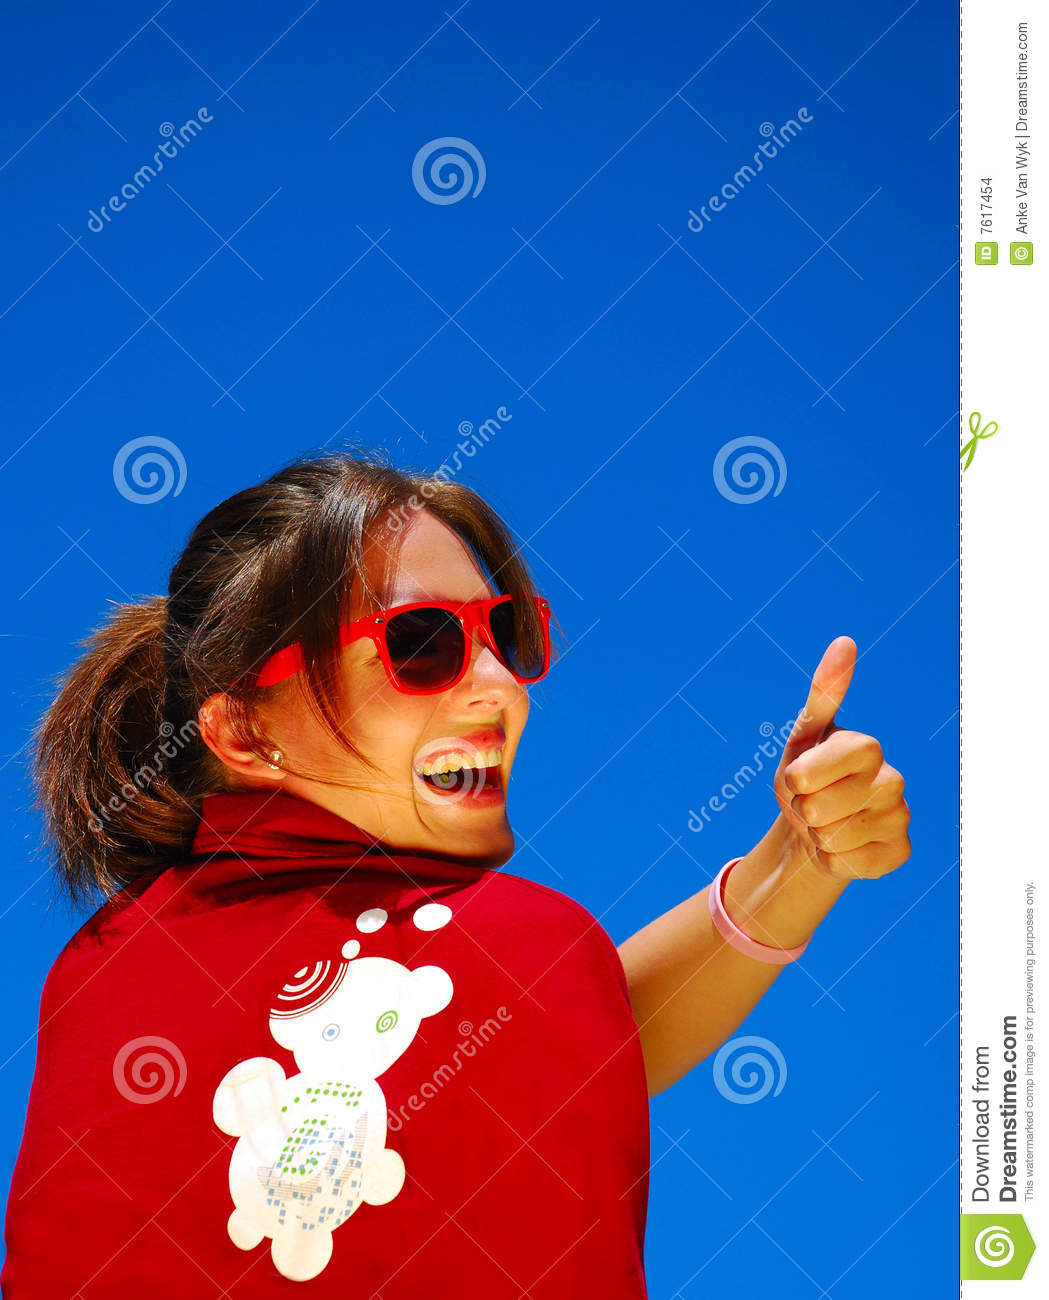 Thumb up for Dreamstime